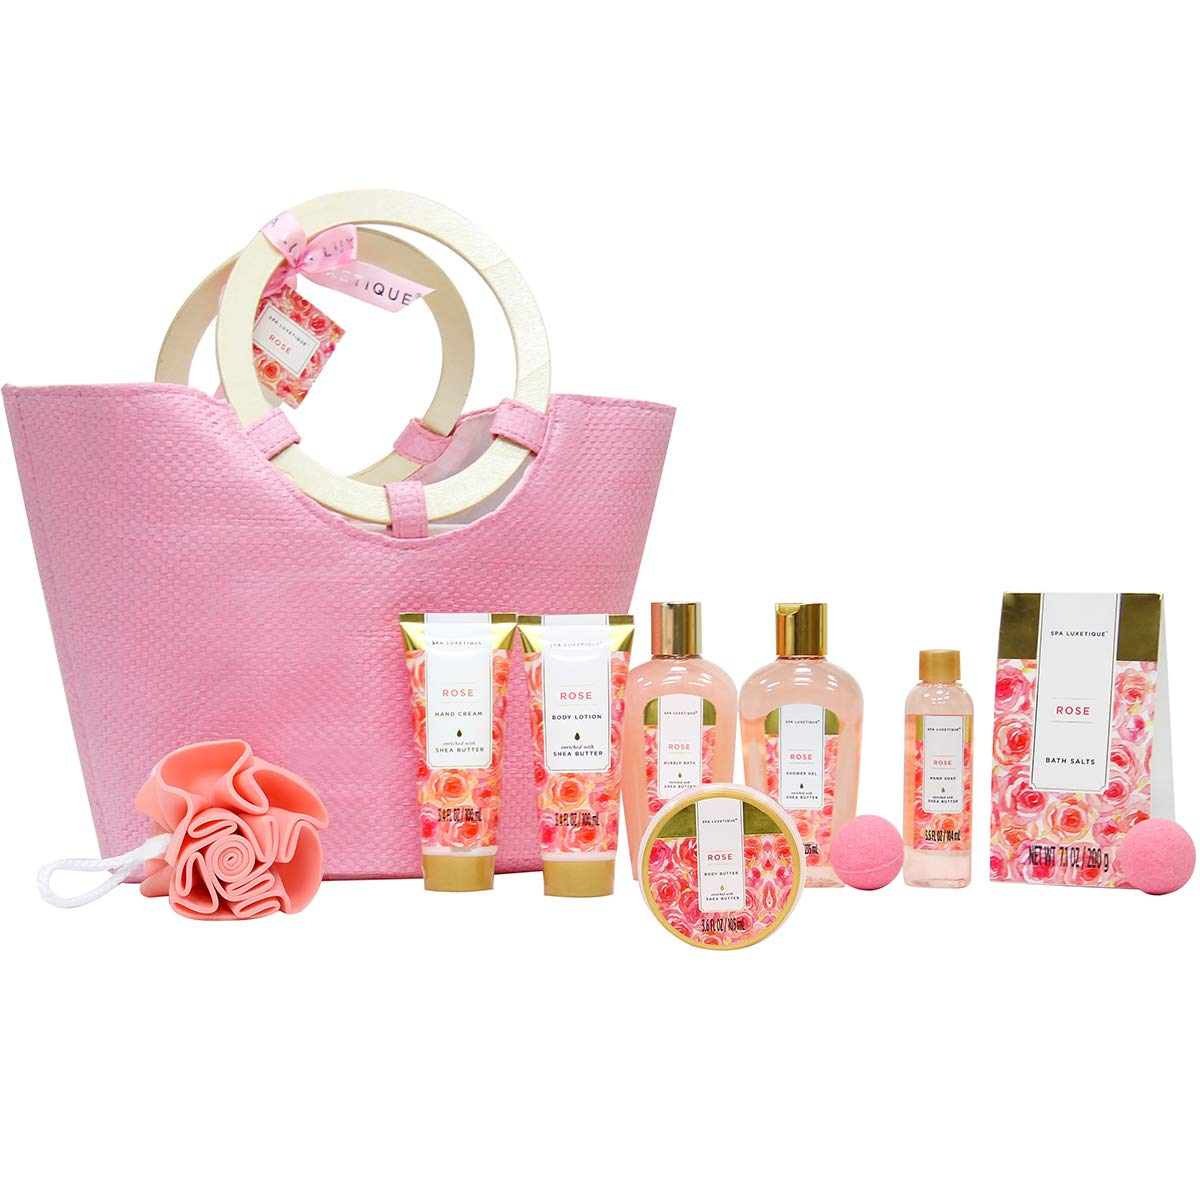 Spa Luxetique Rose Spa Gift Baskets for Women, Premium 10pc Gift Baskets, Best Holiday Gift Set for Women - Deluxe Spa Tote Bag with Wooden Handle, Bath Salt, Hand Soap, Shower Gel and Moe!